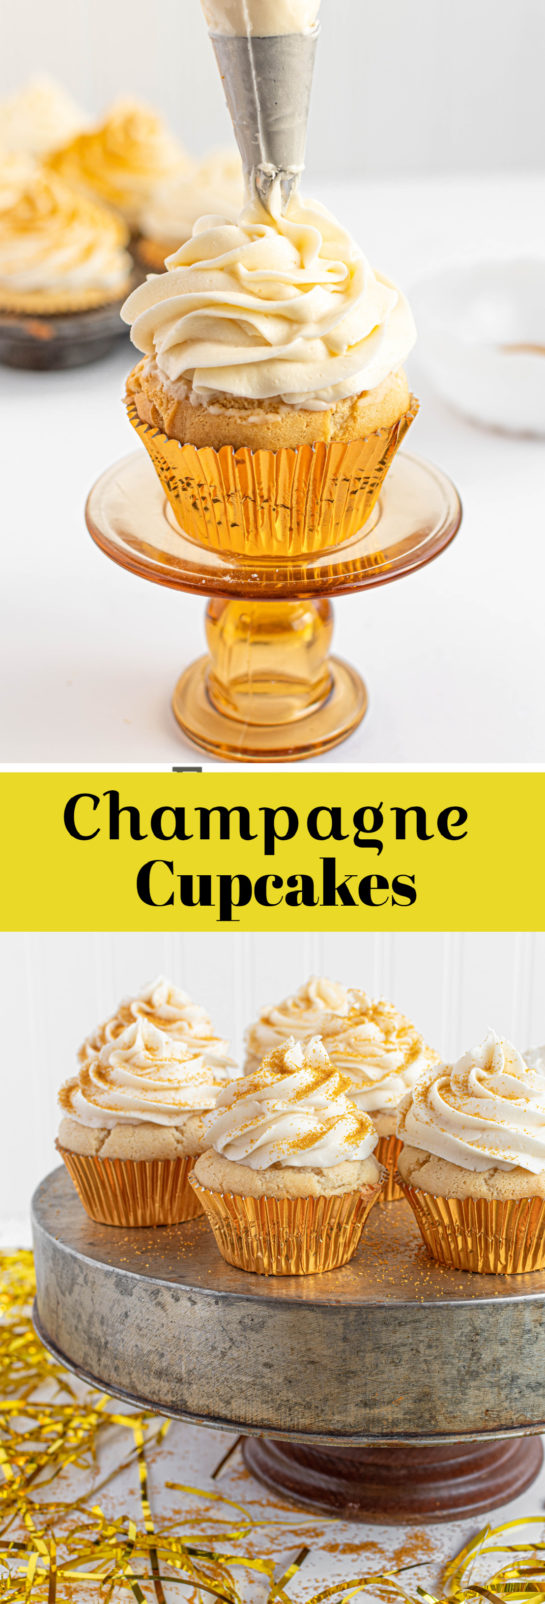 Celebration Champagne Cupcakes recipe is perfect for birthdays, Mother's Day, brunch, bridal shower or a New Year's Eve dessert! They are jazzed up with gold sprinkles!